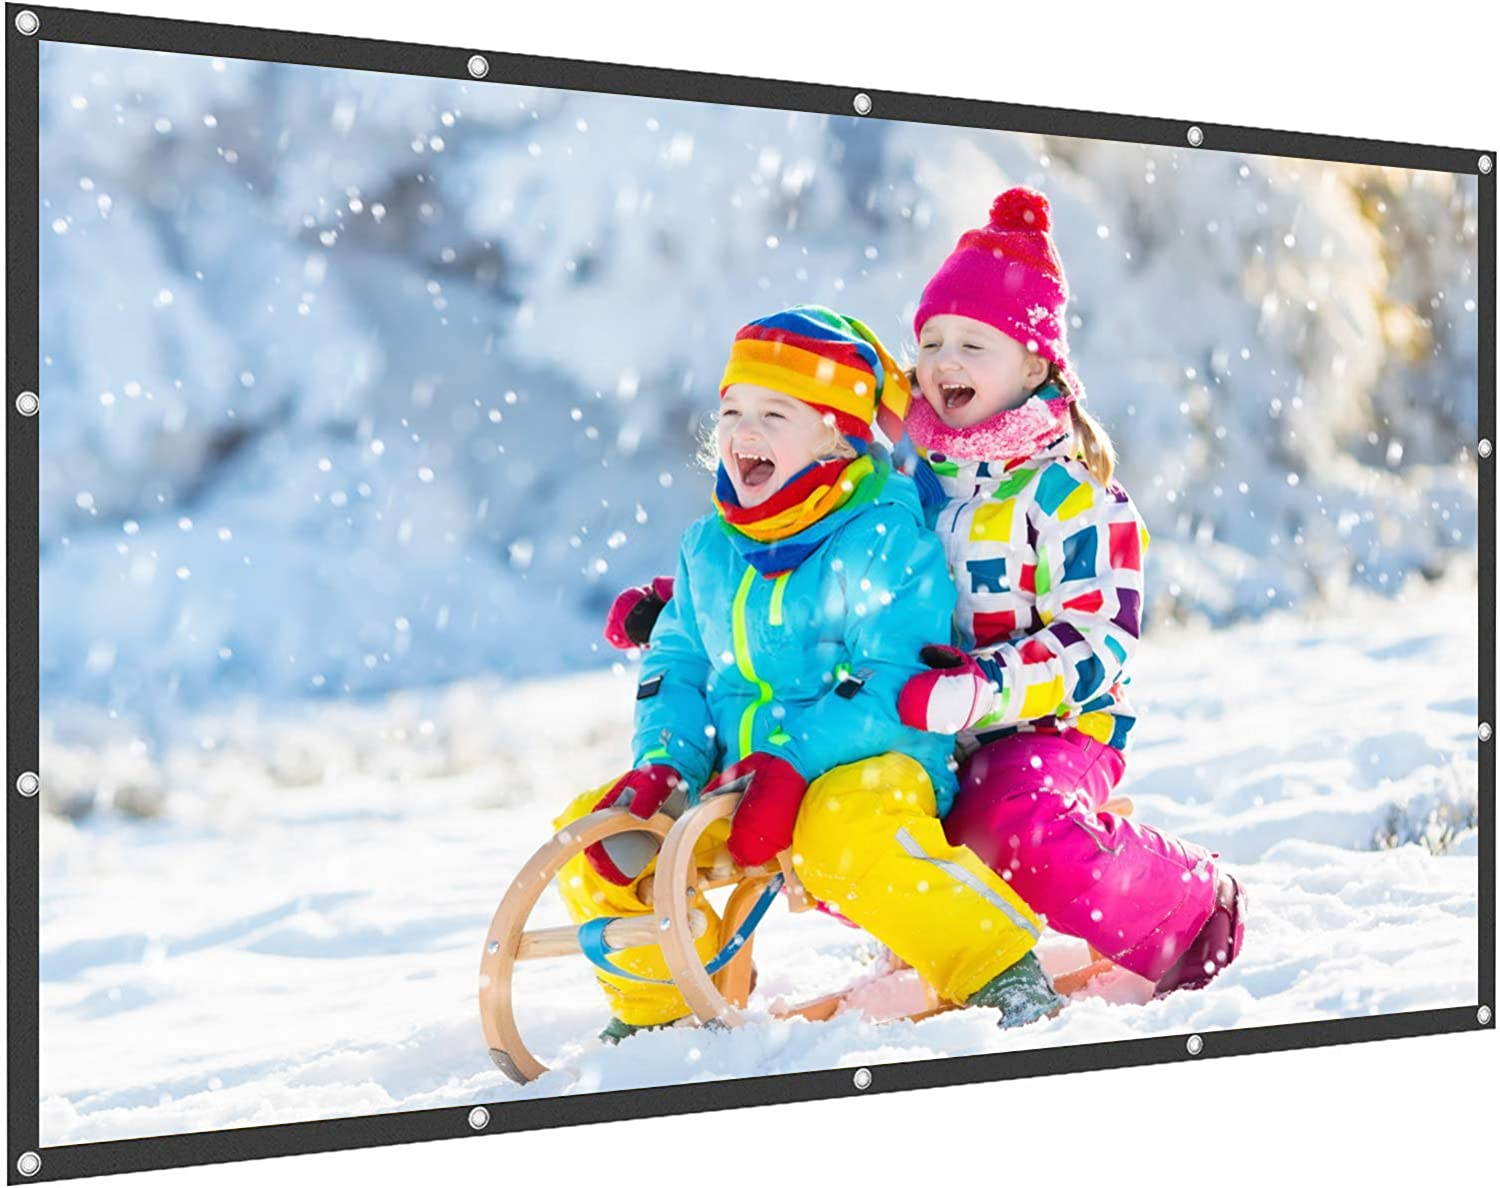 WOWOTO 150 inch Projection Screen 16:9 HD Foldable Wrinkle-Free Portable 3D Movies Screen for Home Theater Outdoor Indoor Support Double Sided Projection